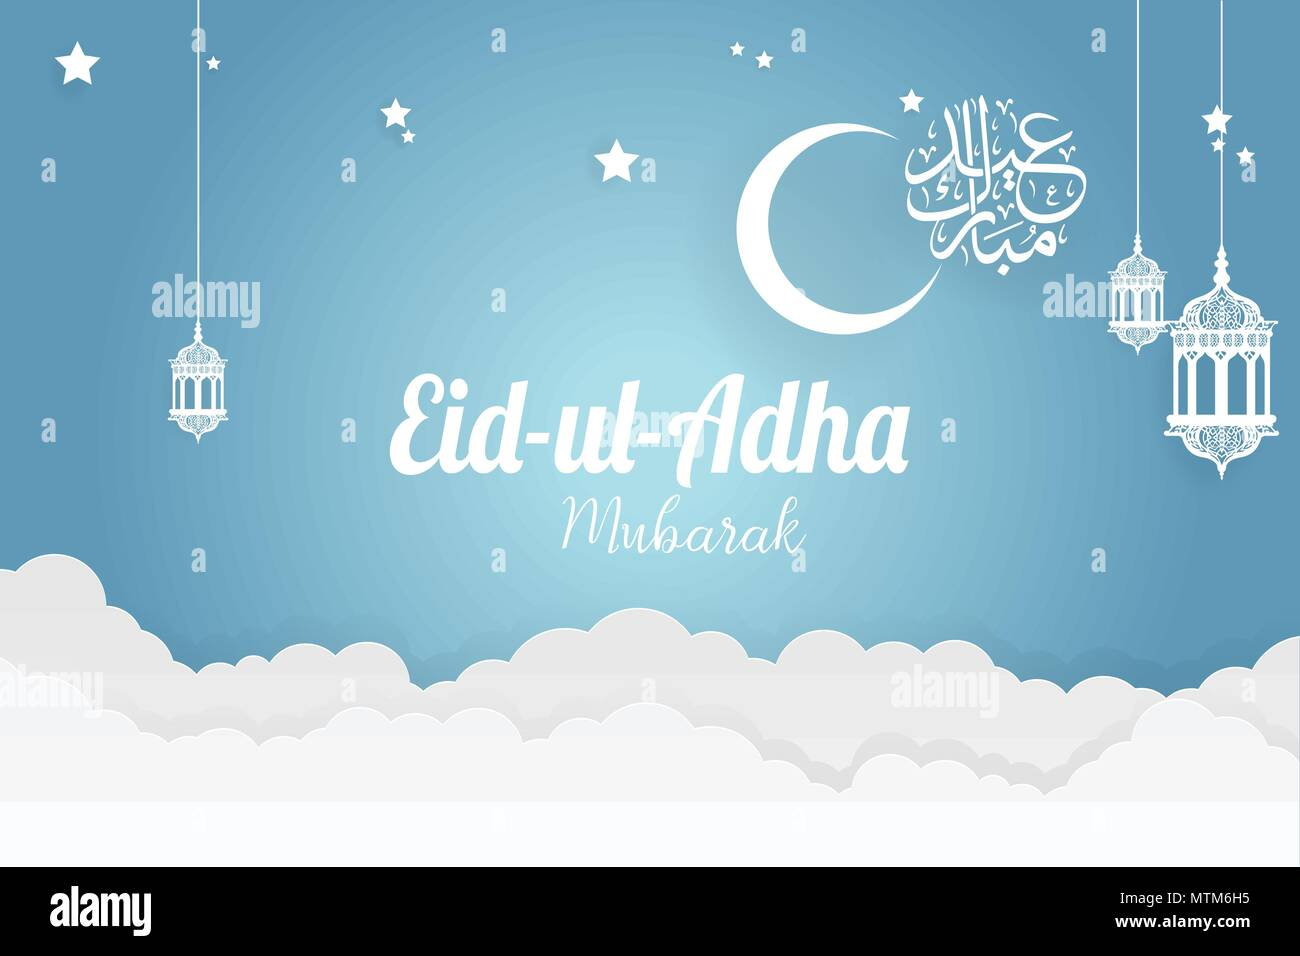 Paper Art Eid Ul Adha Mubarak Vector Template Design Stock Vector